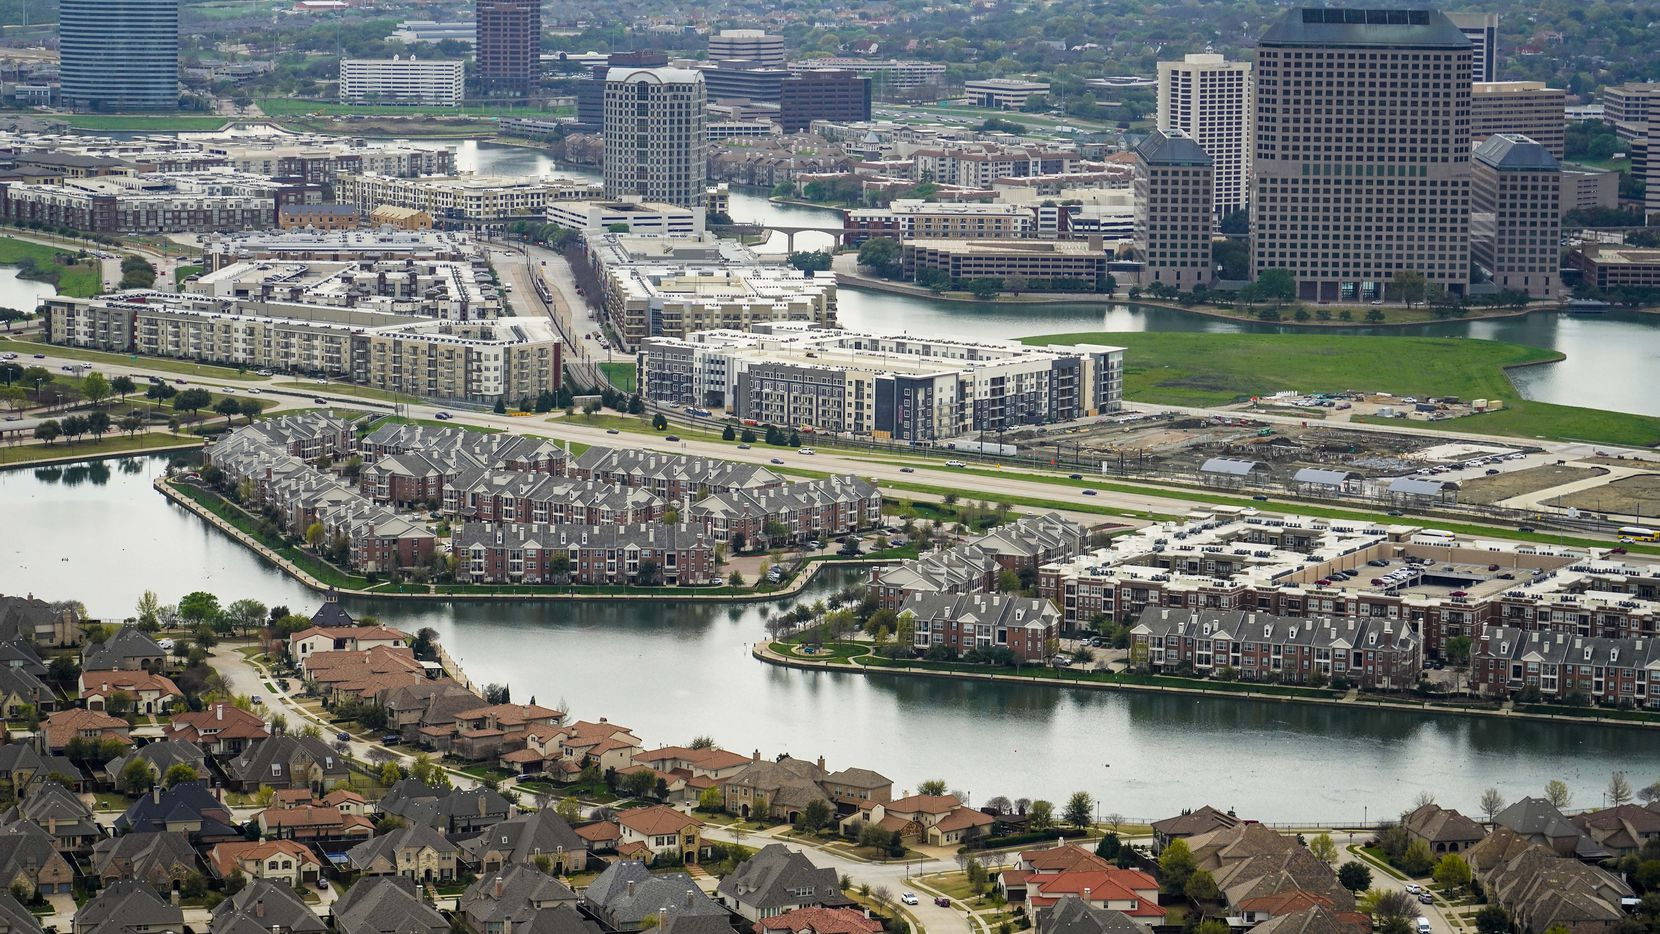 Ten companies provide more than 13% of jobs in Irving.